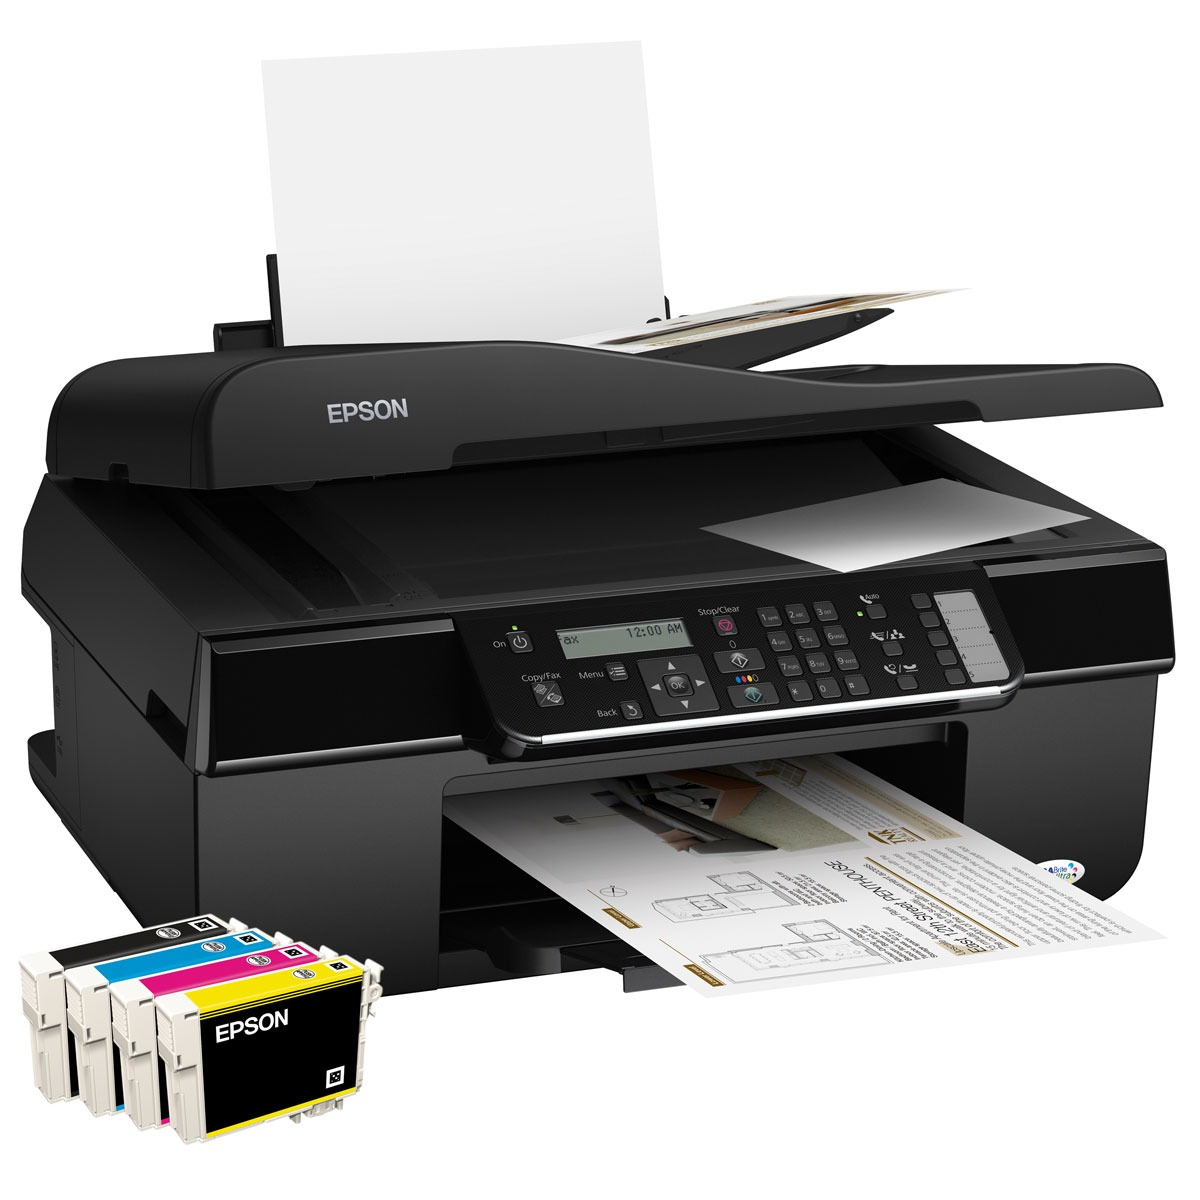 epson stylus office bx305fw imprimante multifonction epson sur. Black Bedroom Furniture Sets. Home Design Ideas